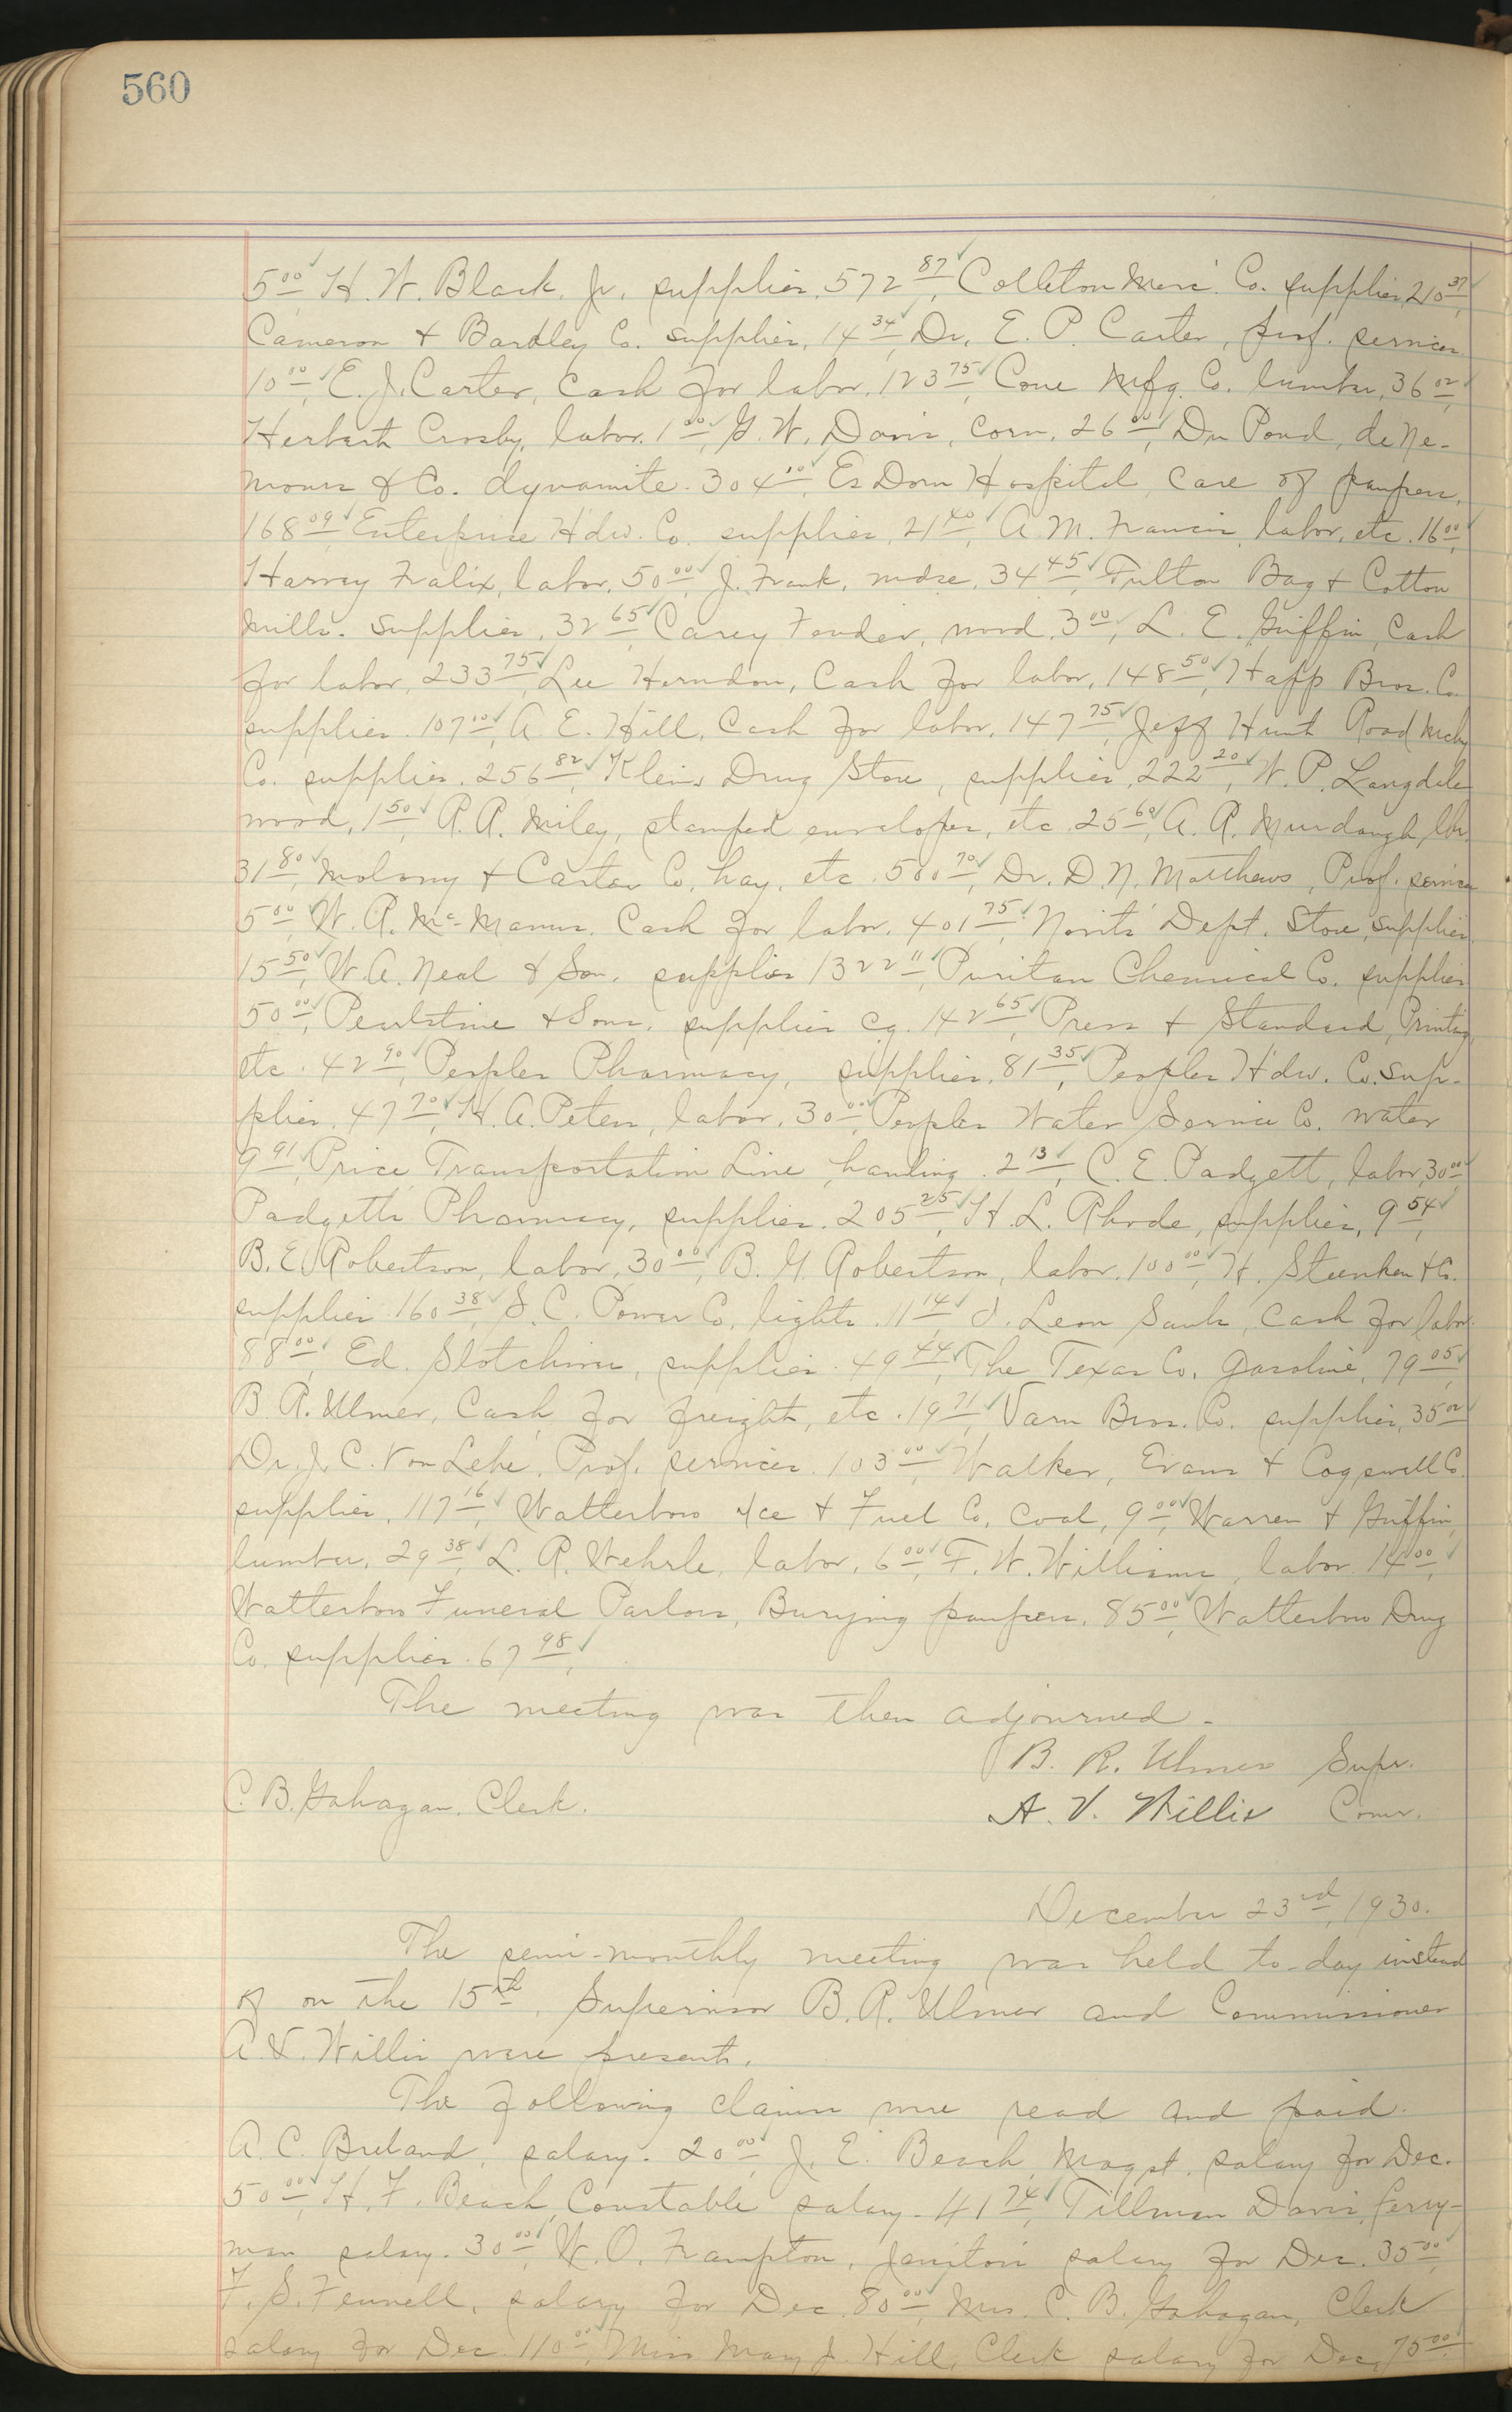 Colleton County Highway Commission Ledger, Page 560